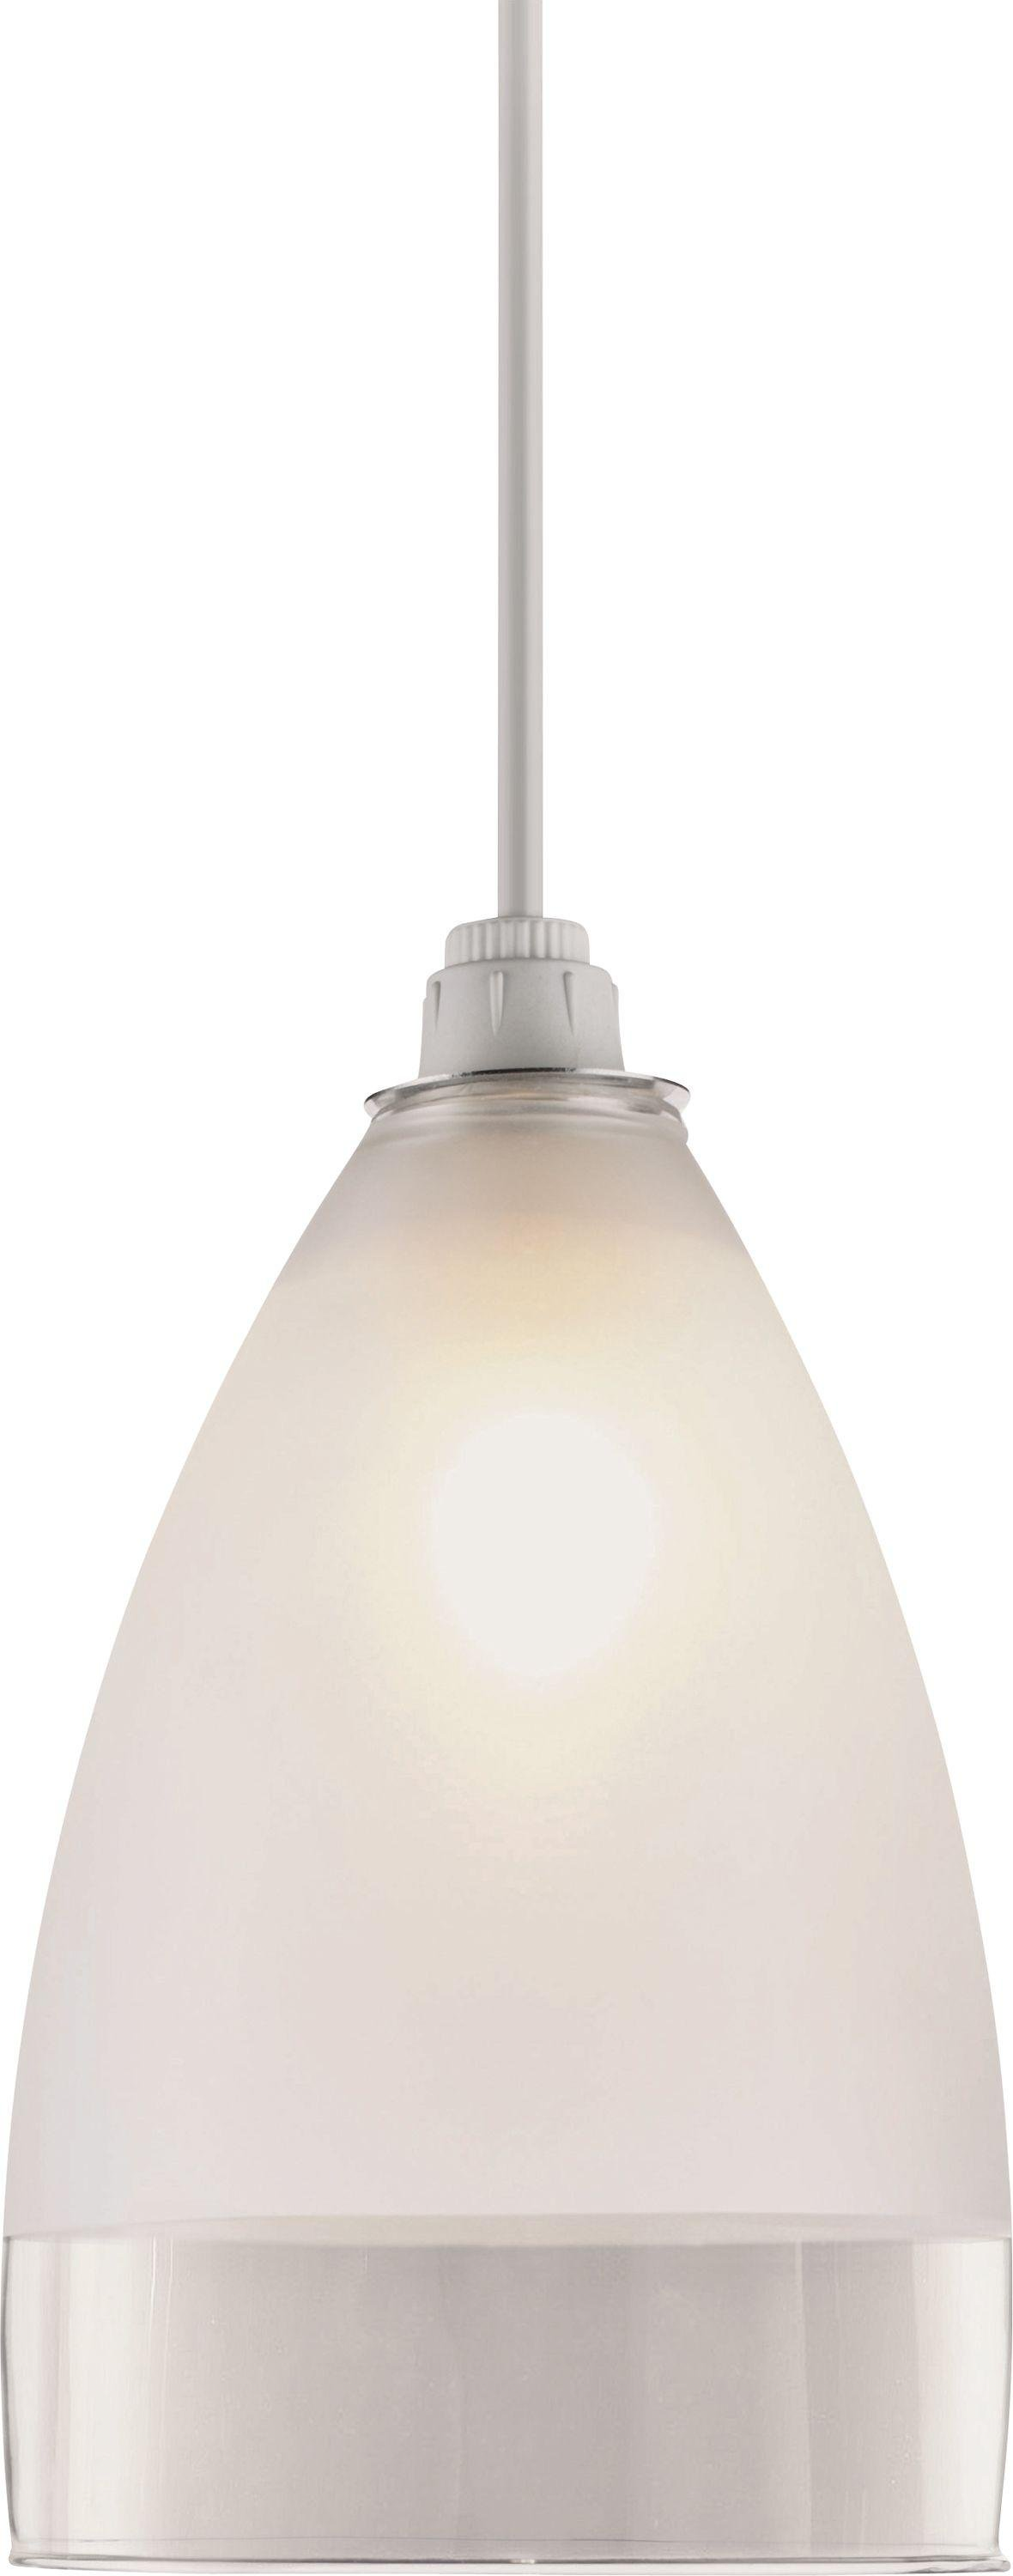 Argos Home Glass Pendant Shade - Clear and Frosted